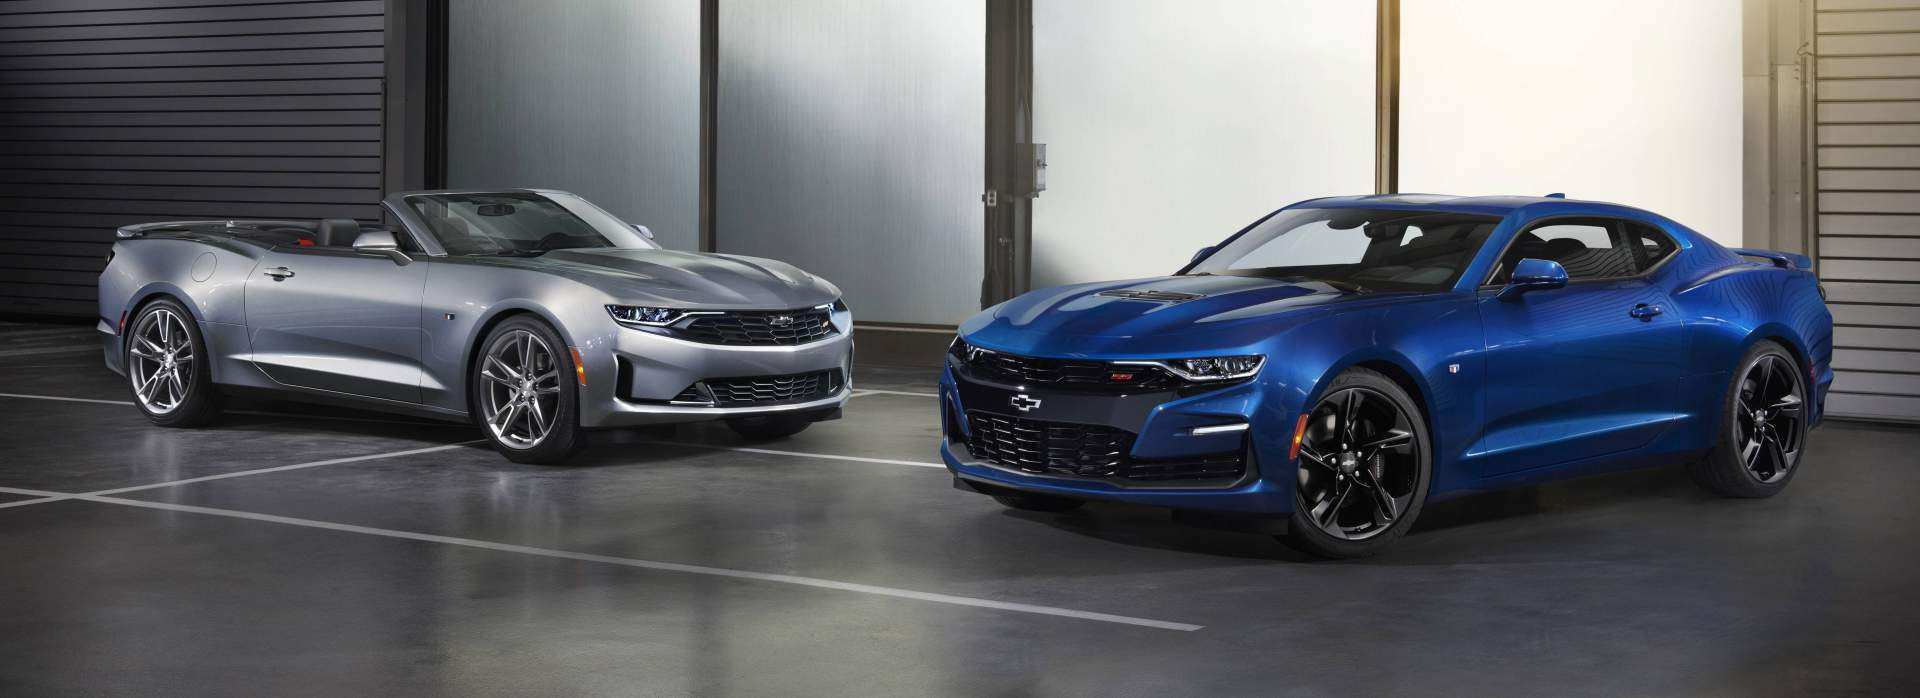 83 New 2020 Chevrolet Camaro Rumors by 2020 Chevrolet Camaro